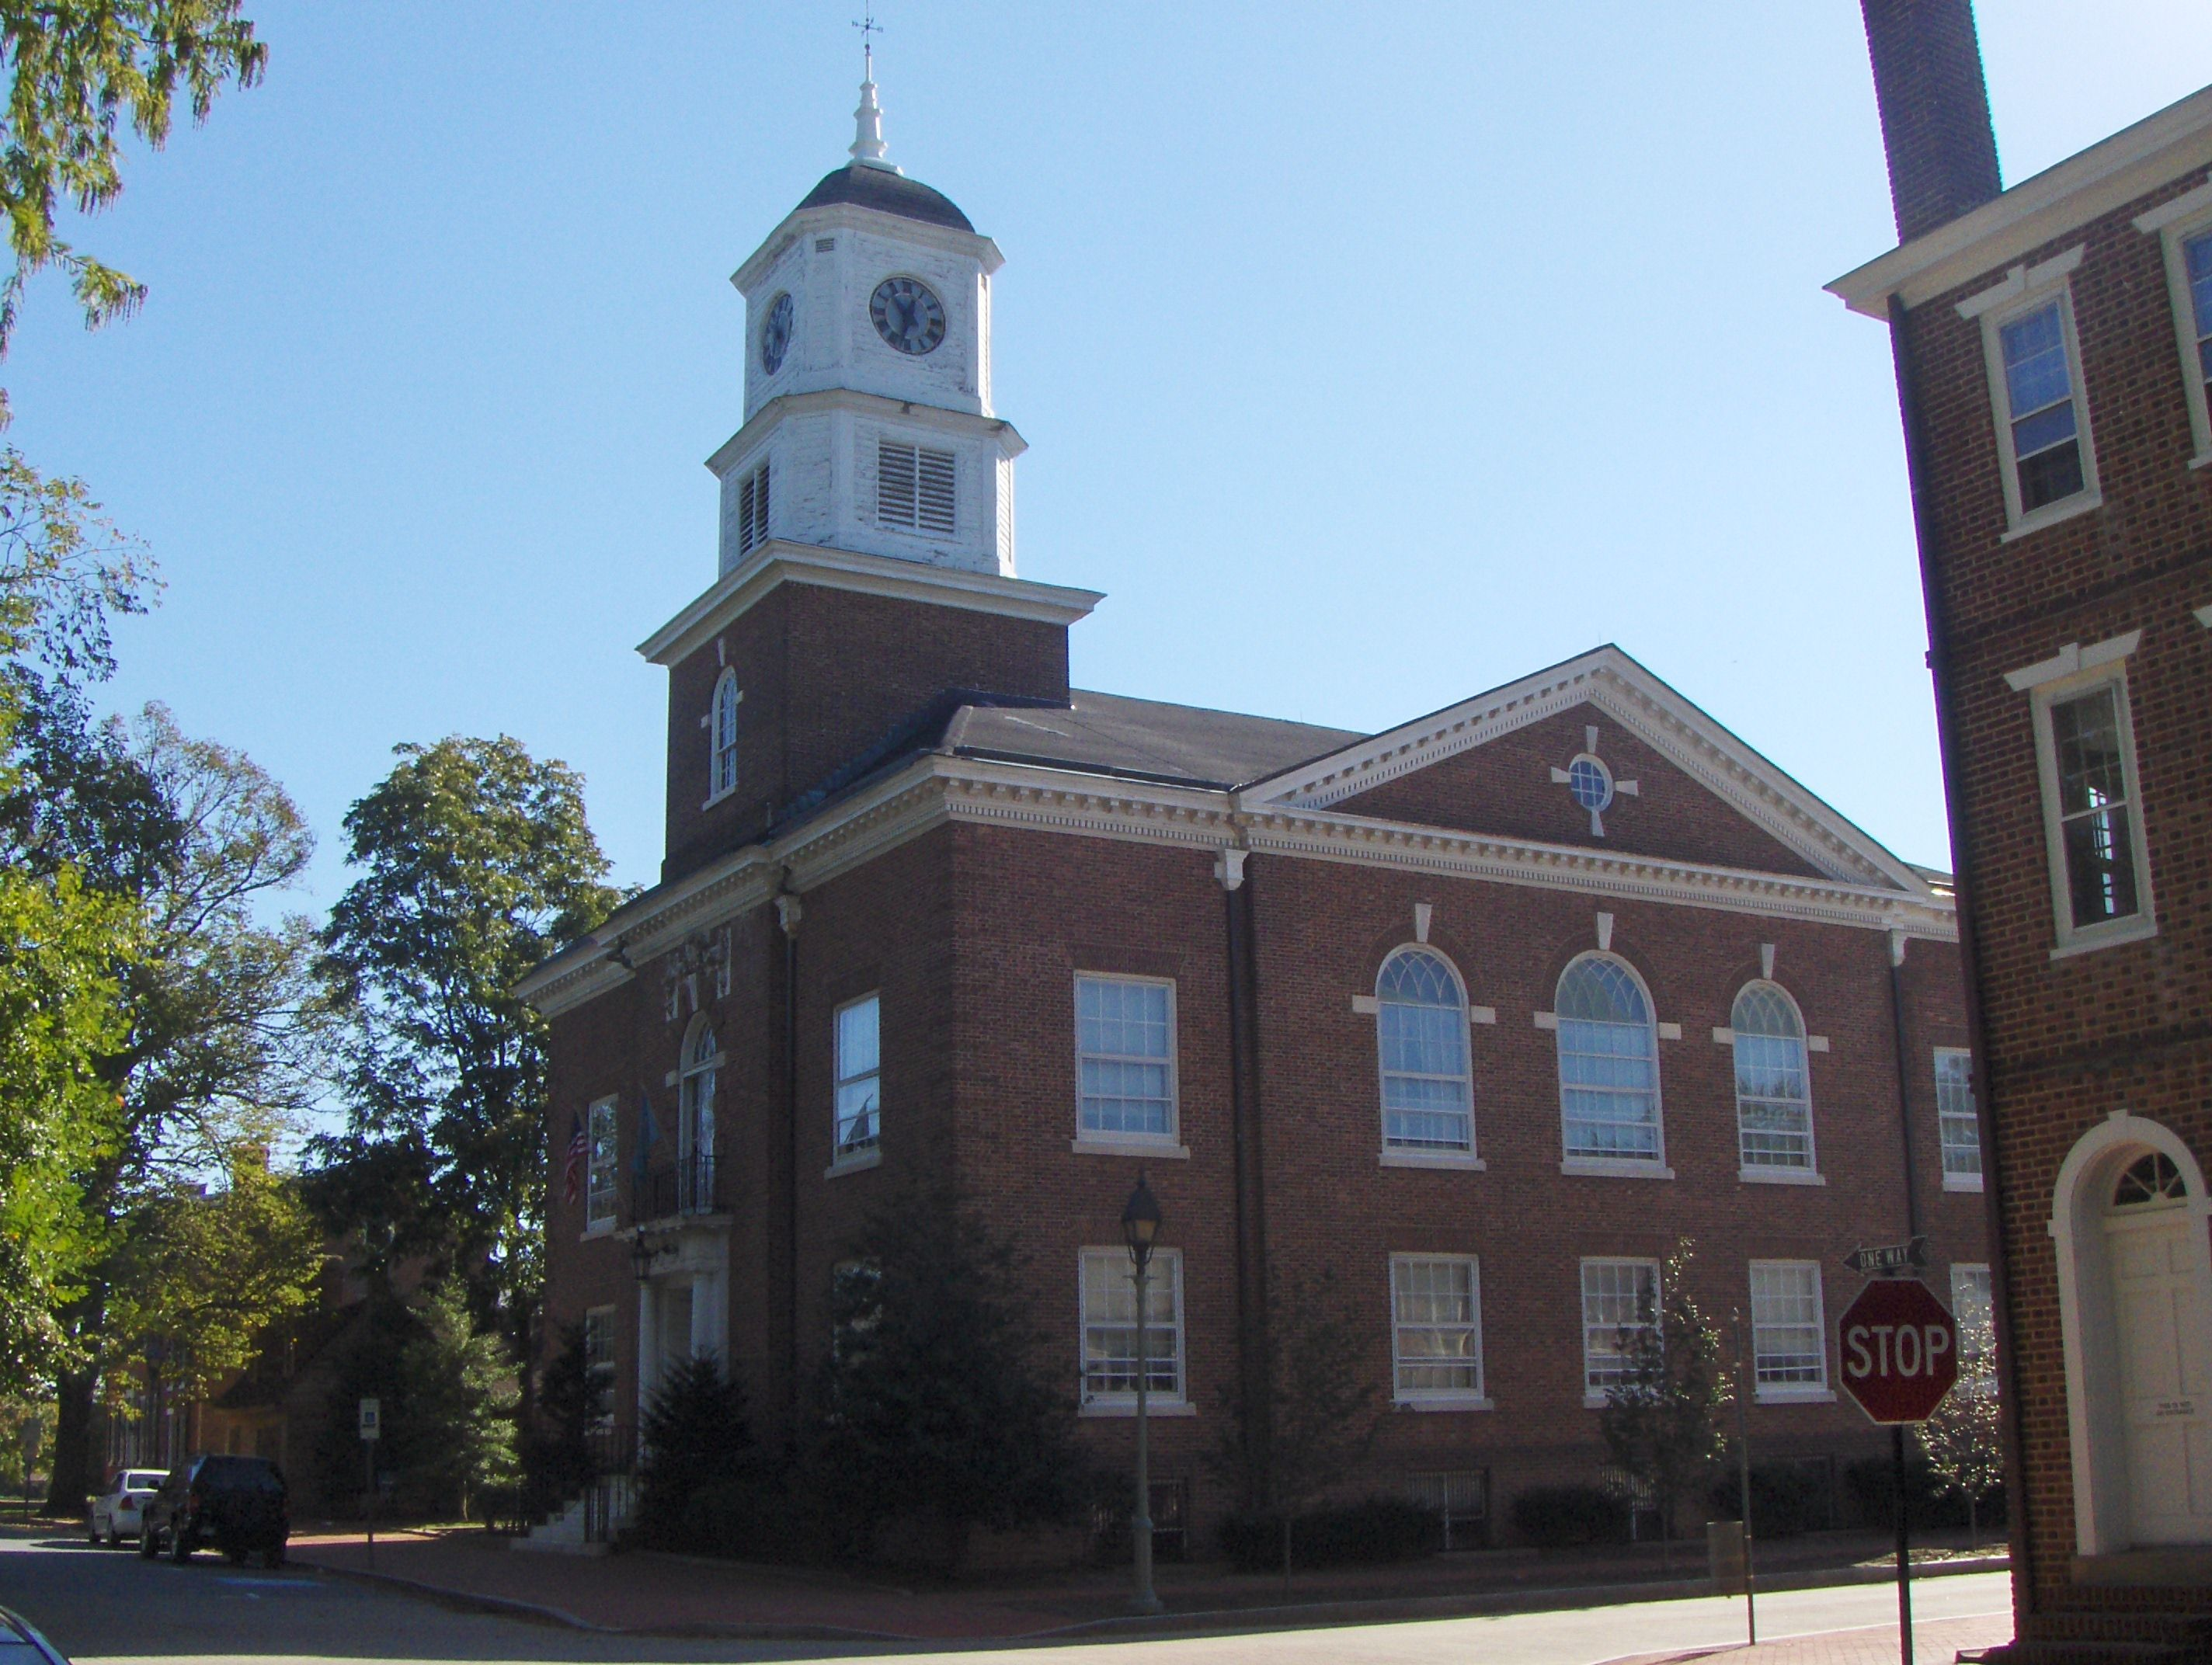 The Old Kent County Court House which now occupies the site.